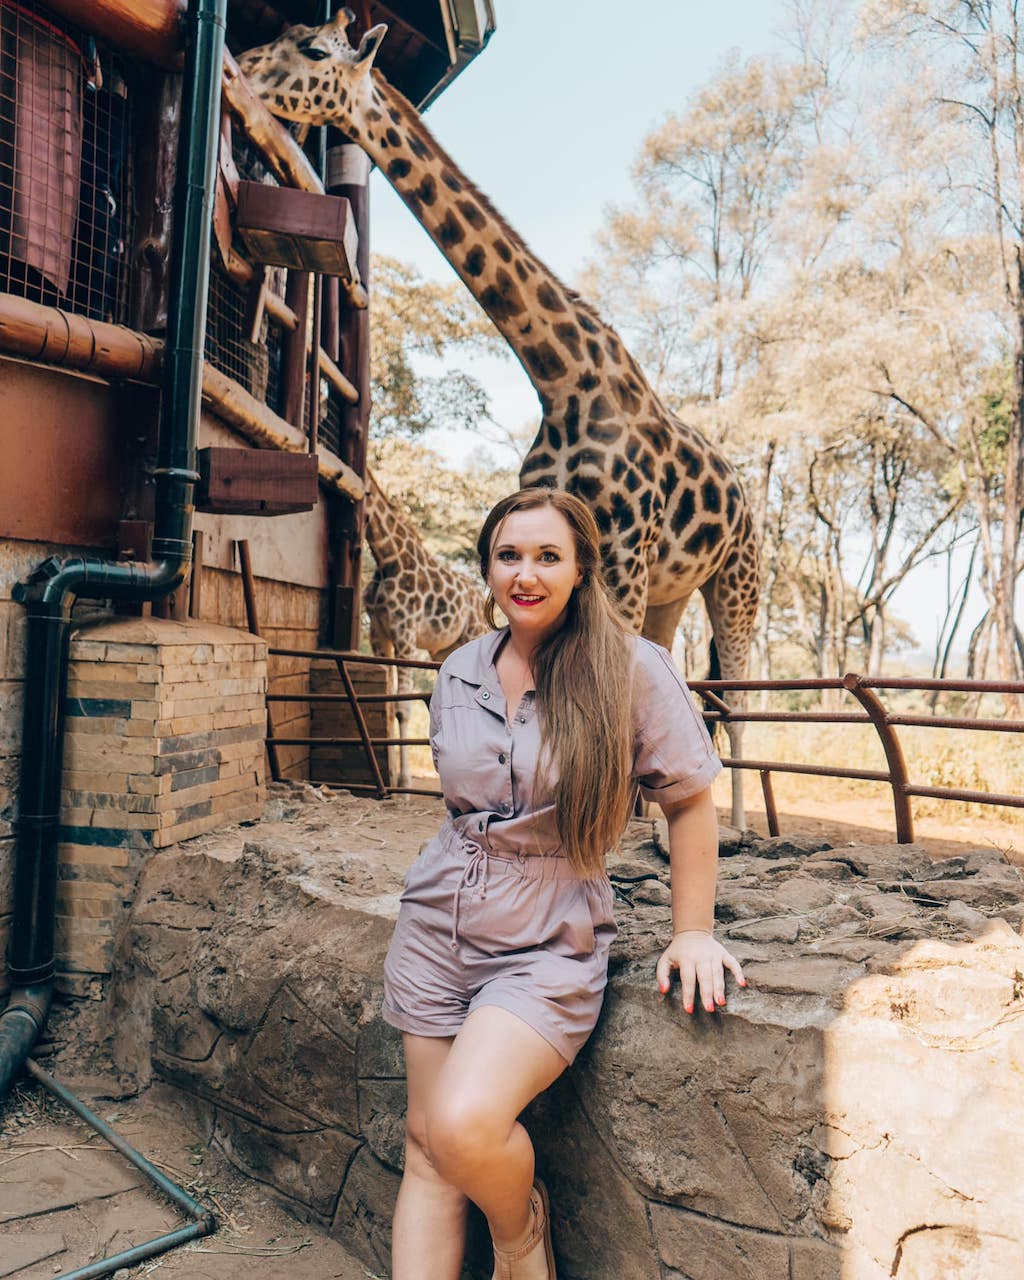 Meg poses for a picture in front of a giraffe at a sanctuary in Tanzania.